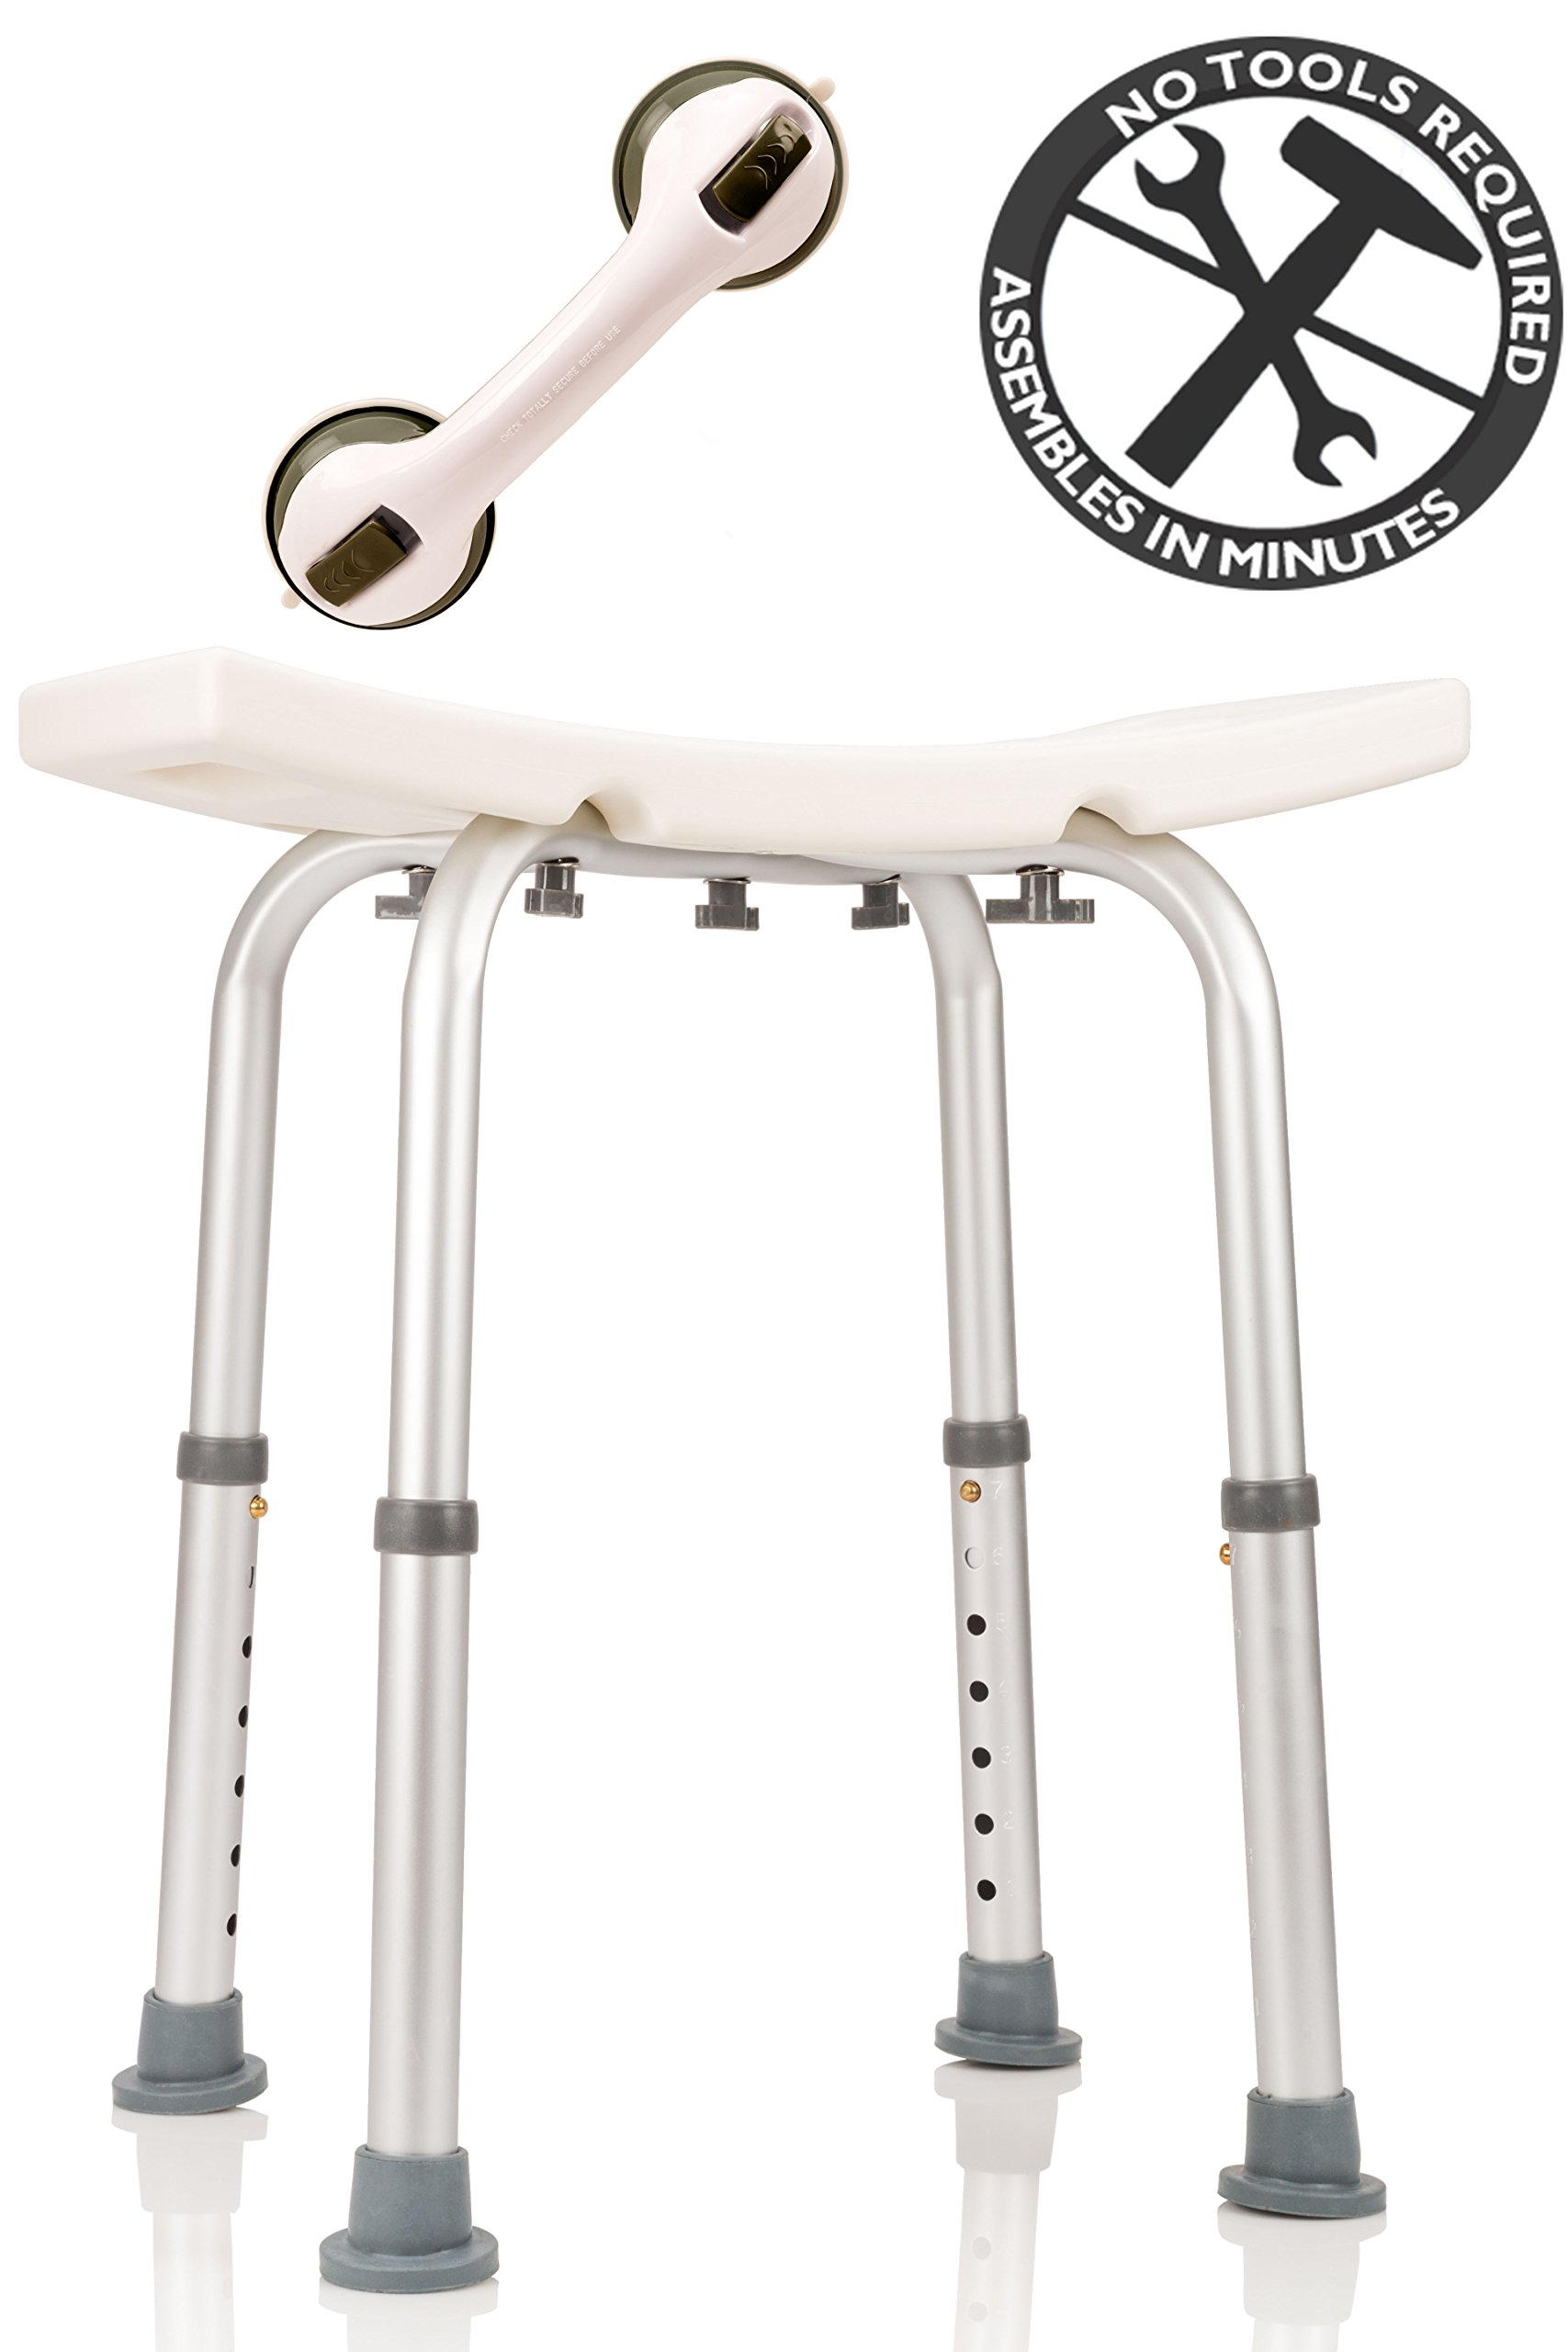 Dr. Maya Adjustable Bath and Shower Chair with Free Suction Assist Shower Handle Large White Anti-Slip Bench Bathtub Stool Seat with Aluminum Legs (Shower Chair) by Dr. Maya